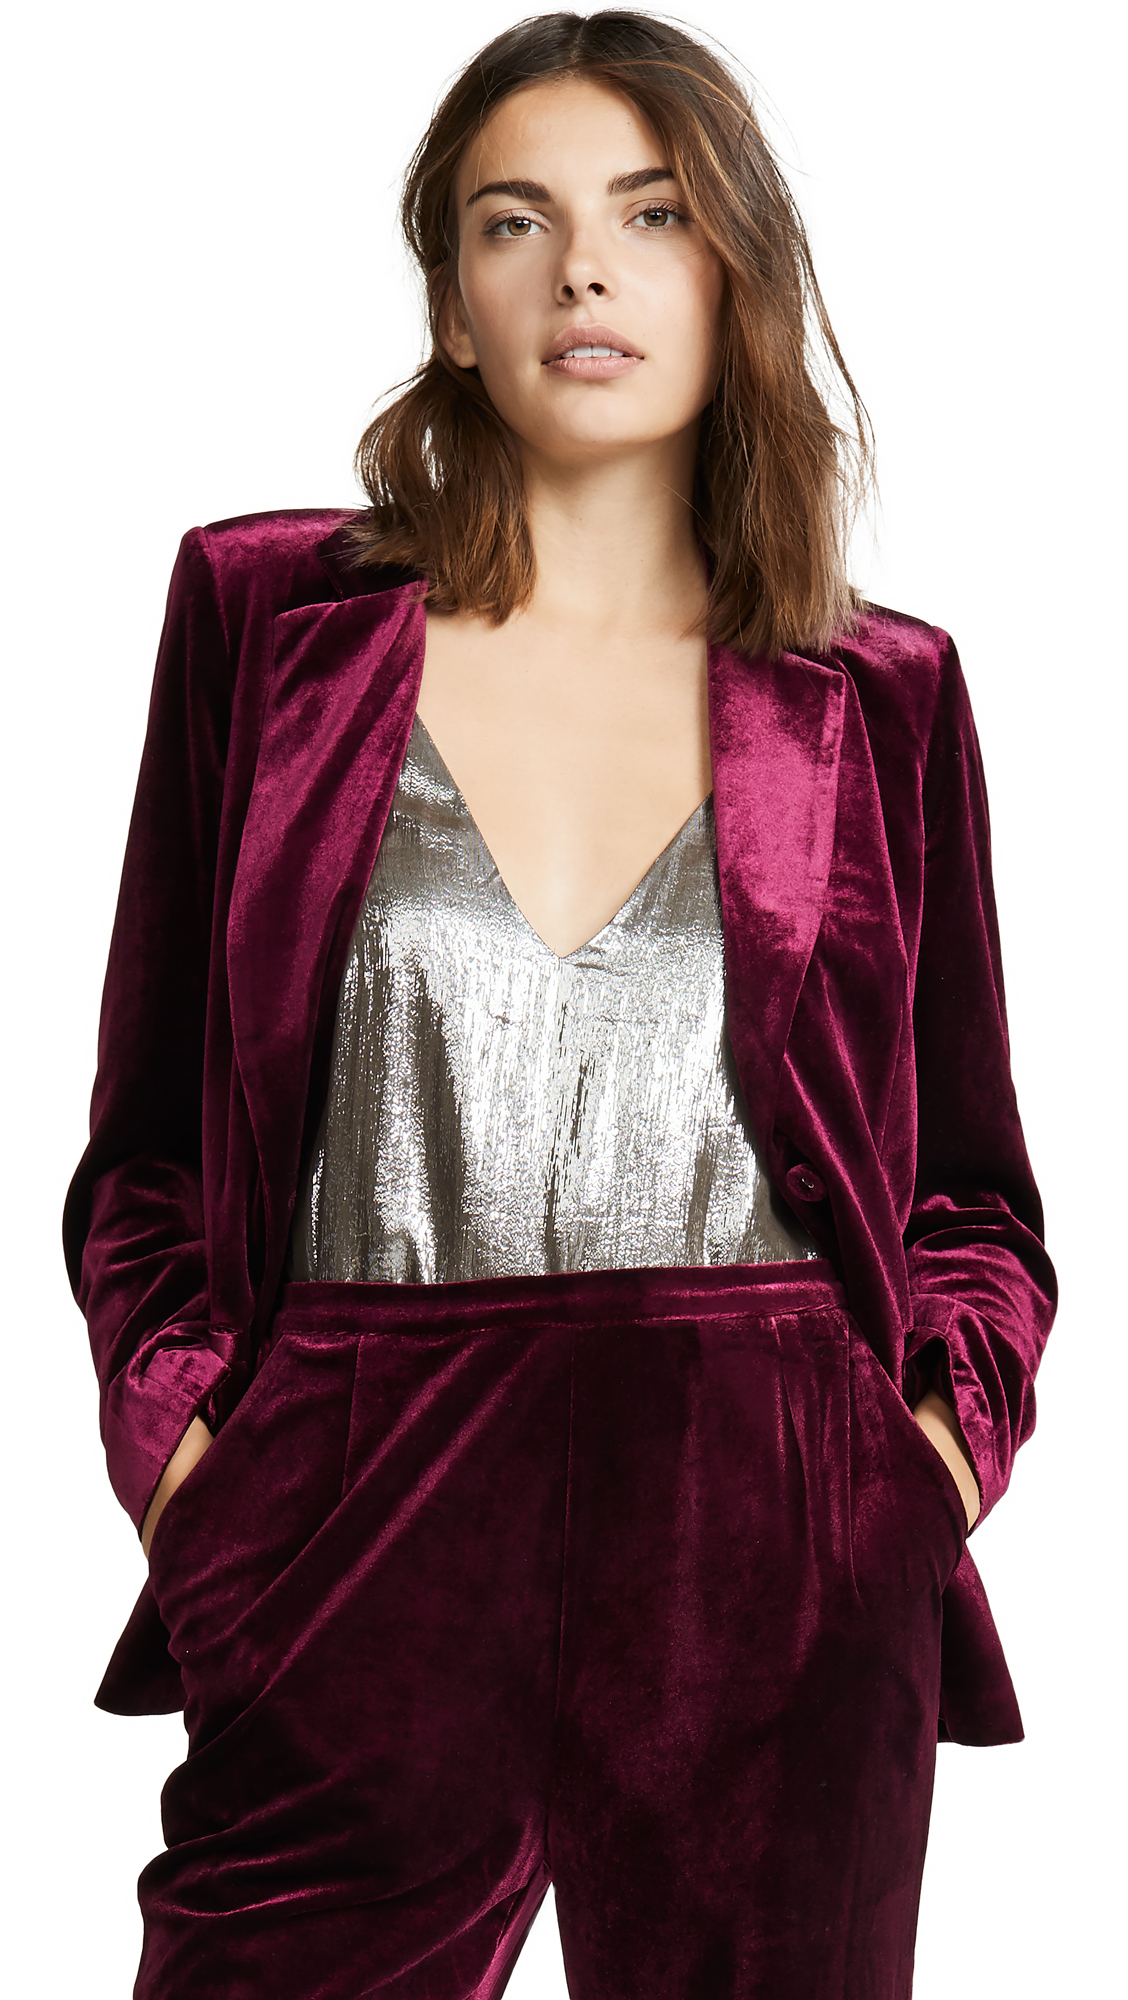 YUMI KIM Trail Blazer Jacket in Burgundy Velvet